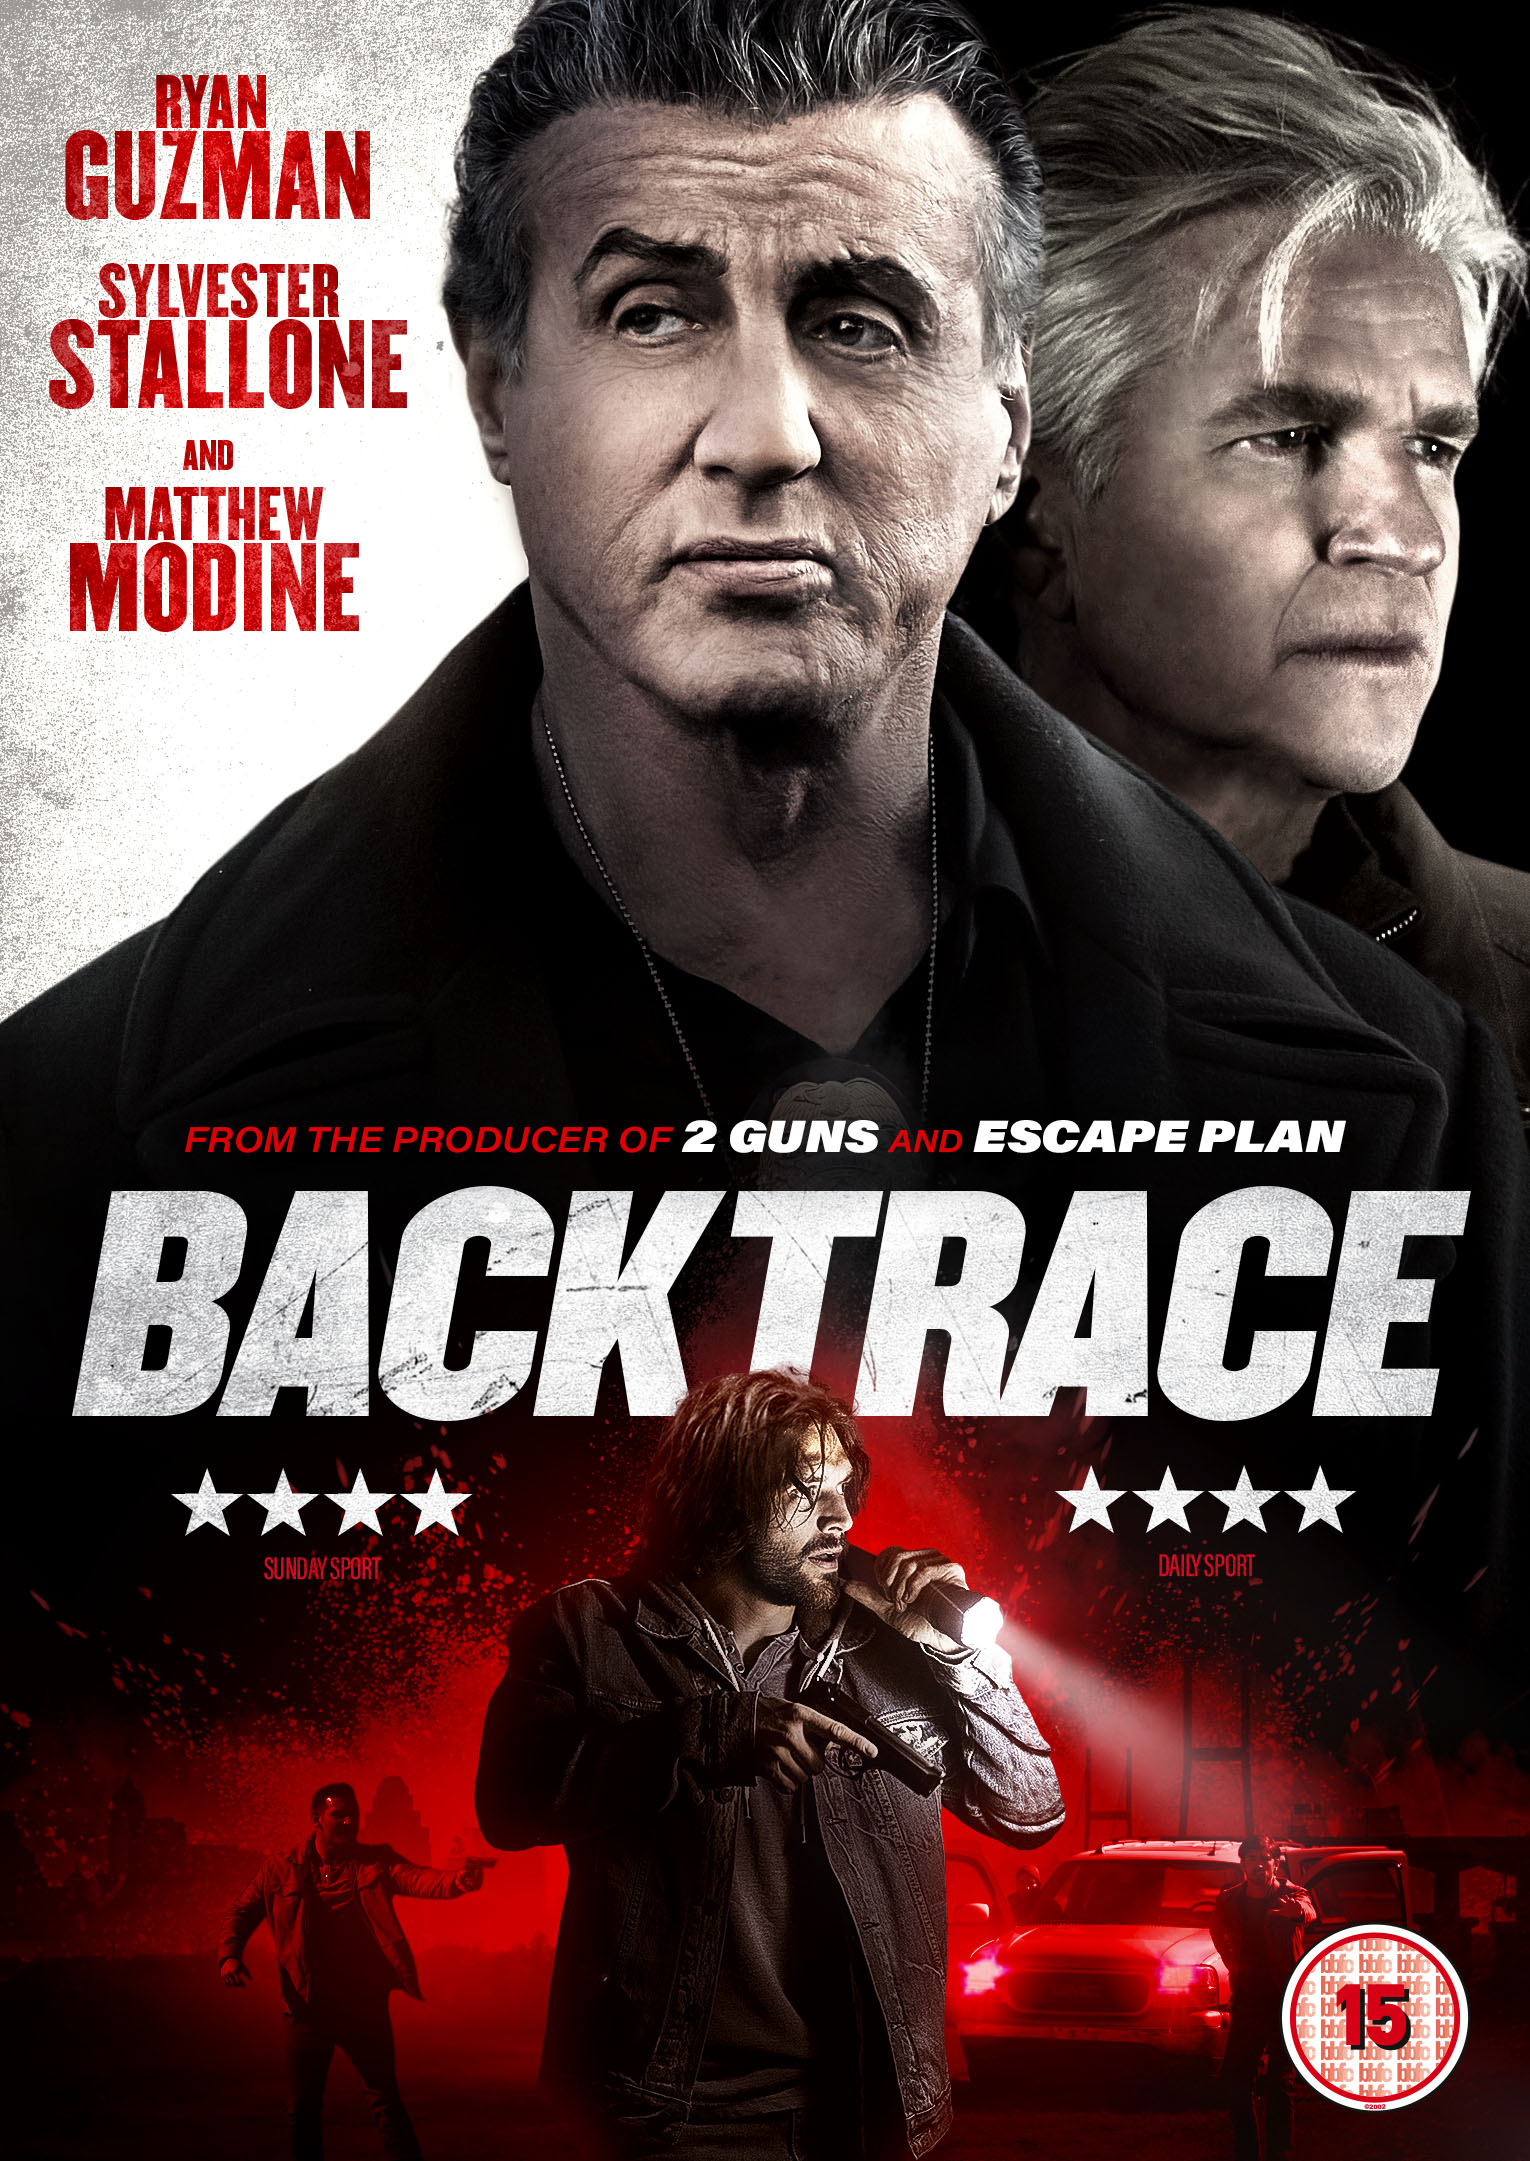 movie 2019 on dvd Backtrace Release Date On Digital HD From 7th January 2019